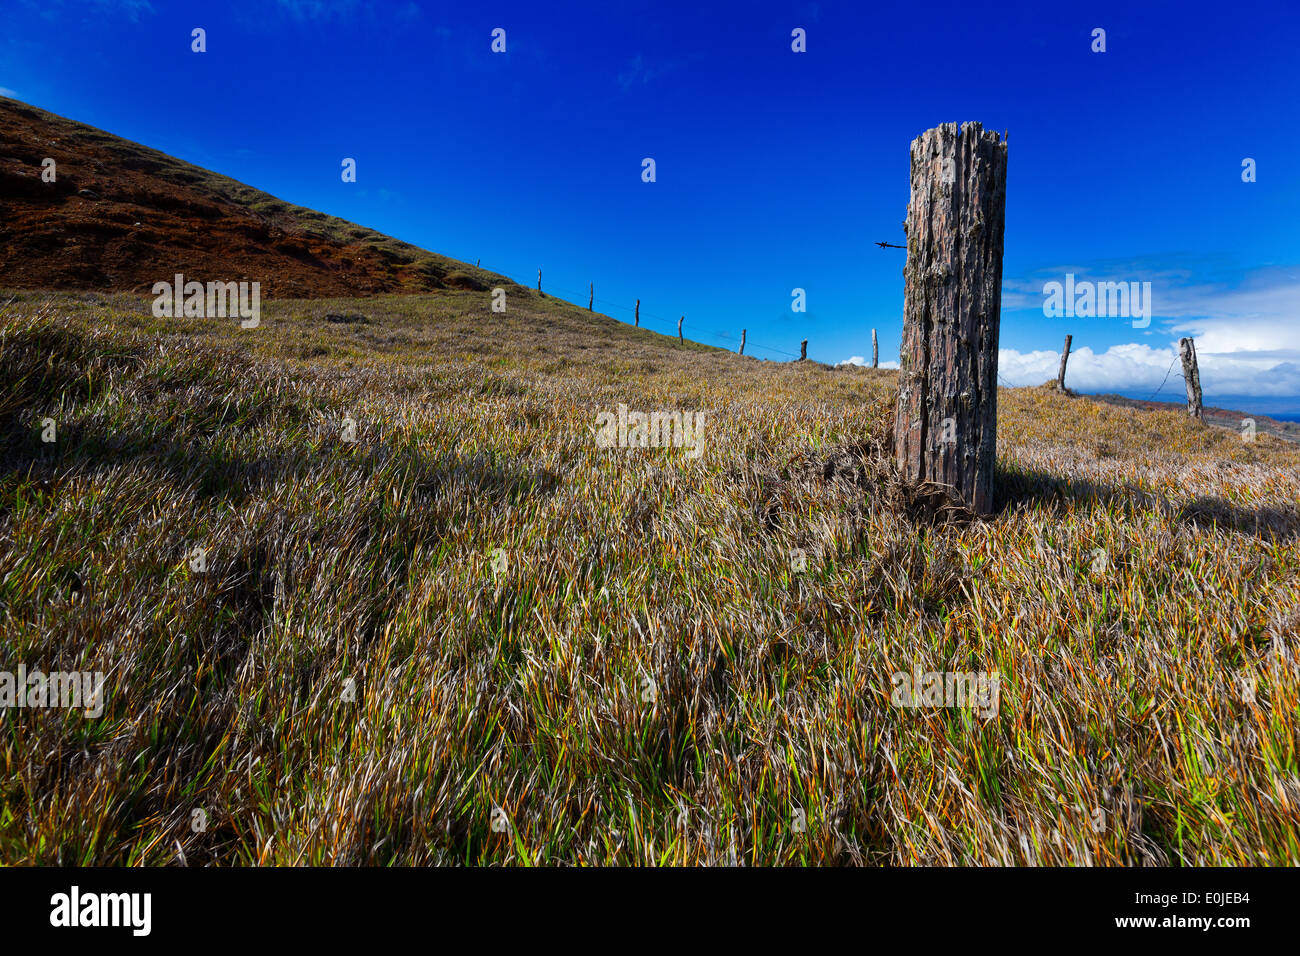 Fence post, broken barb wire pasture land Maui, Hawaii - Stock Image